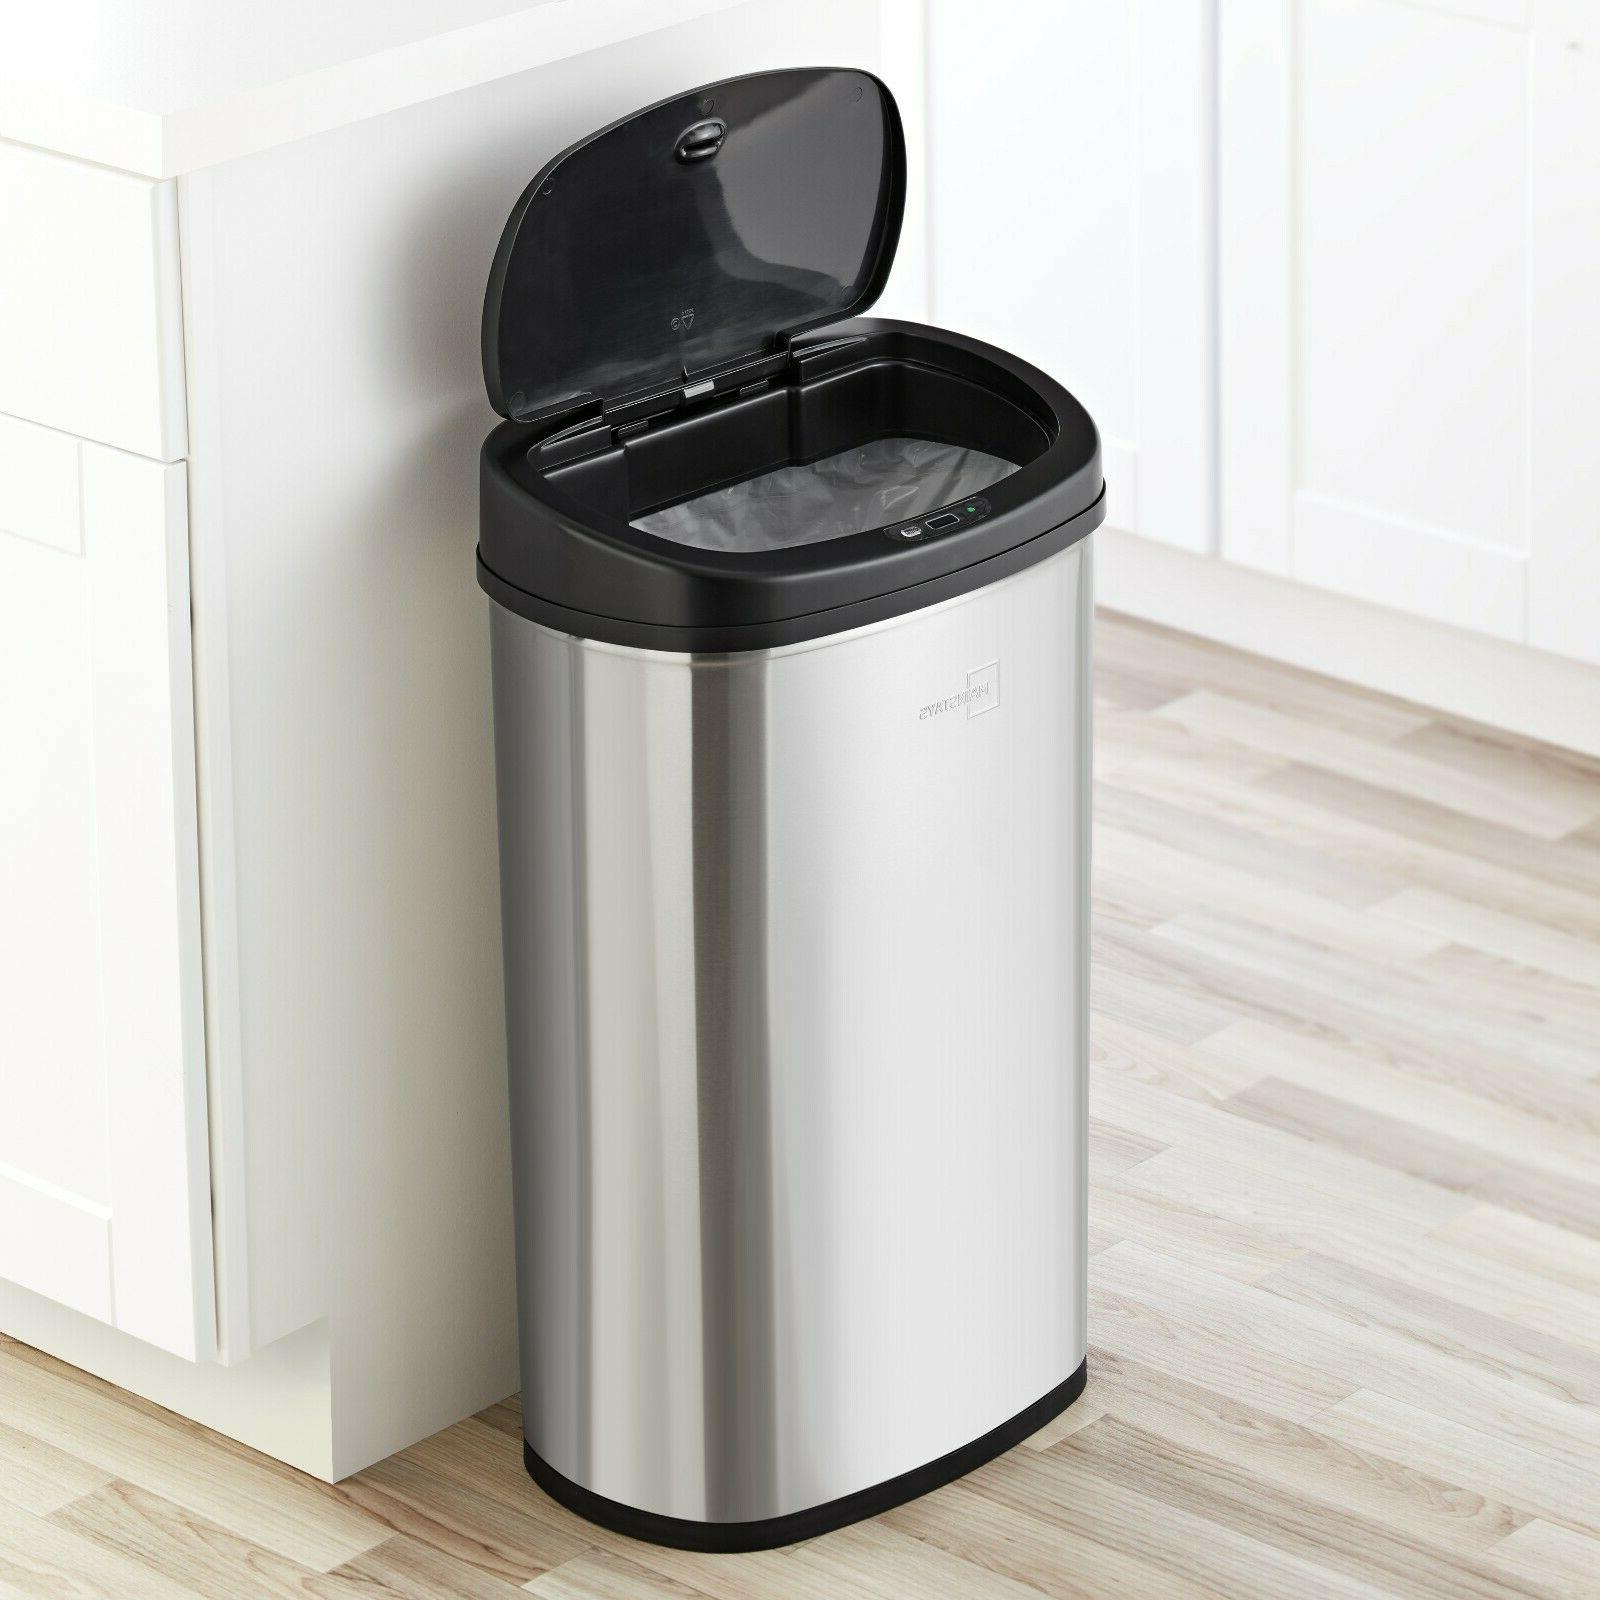 Mainstays Motion Sensor Trash Can, 13.2 Gallon, Stainless St